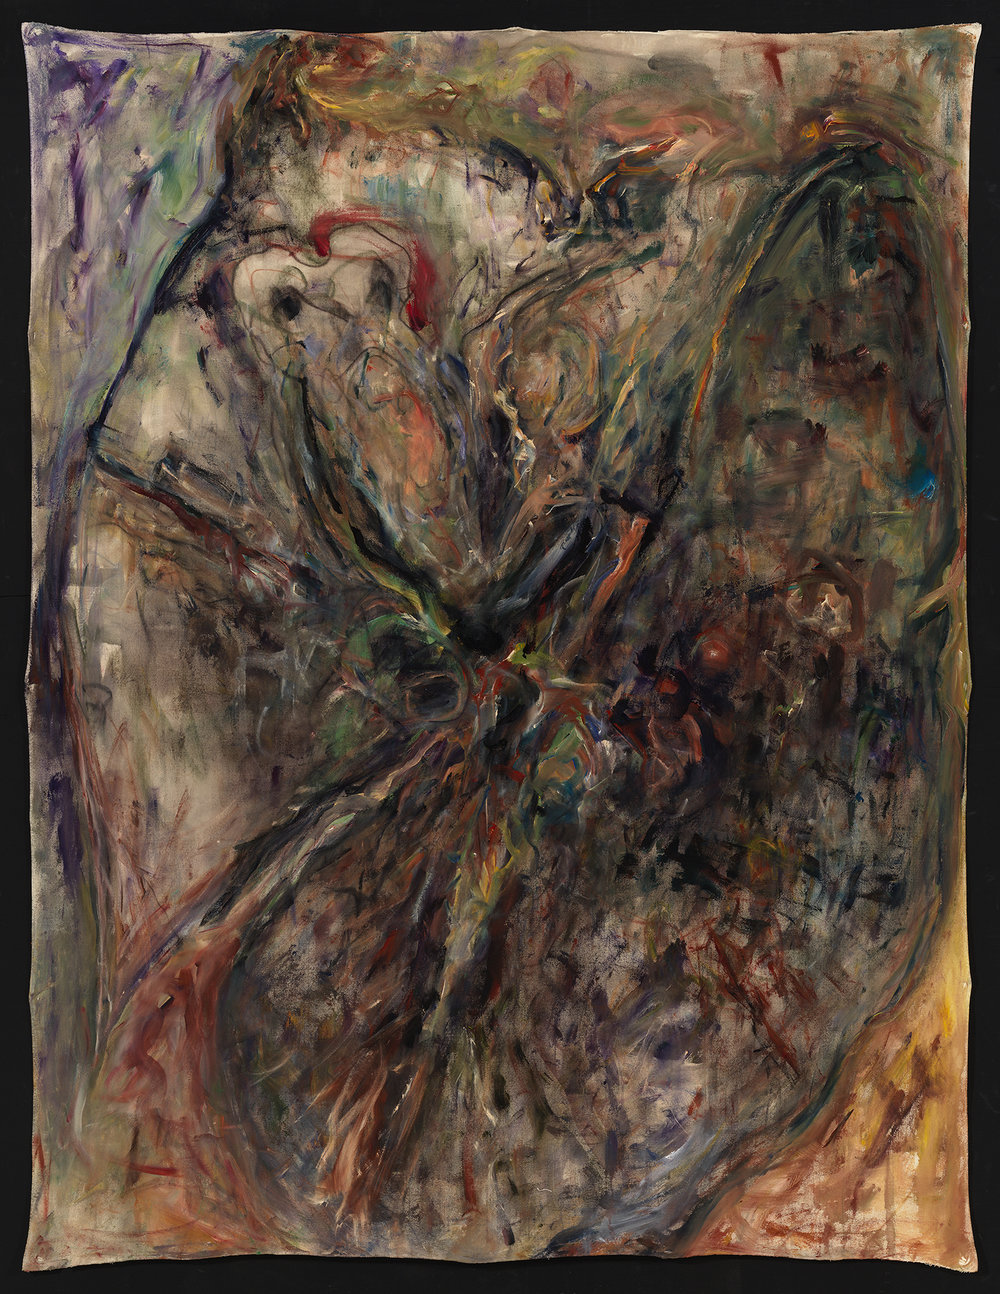 Pillar of Dust #6 , 2018  Chalk, charcoal, gesso and acrylic on canvas  96 × 72 in